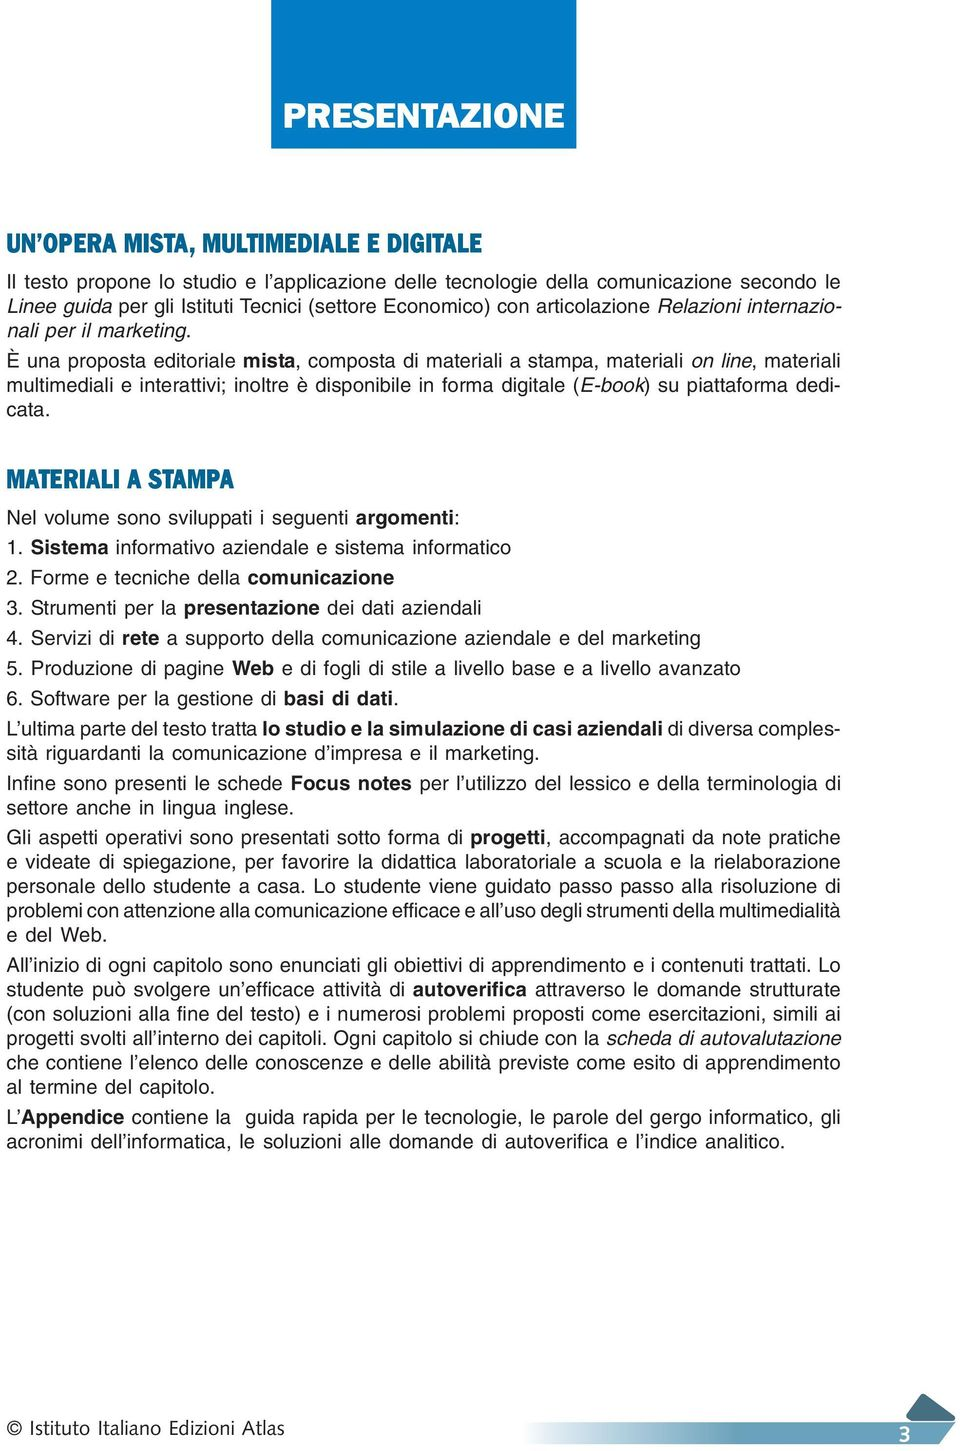 È una proposta editoriale mista, composta di materiali a stampa, materiali on line, materiali multimediali e interattivi; inoltre è disponibile in forma digitale (E-book) su piattaforma dedicata.